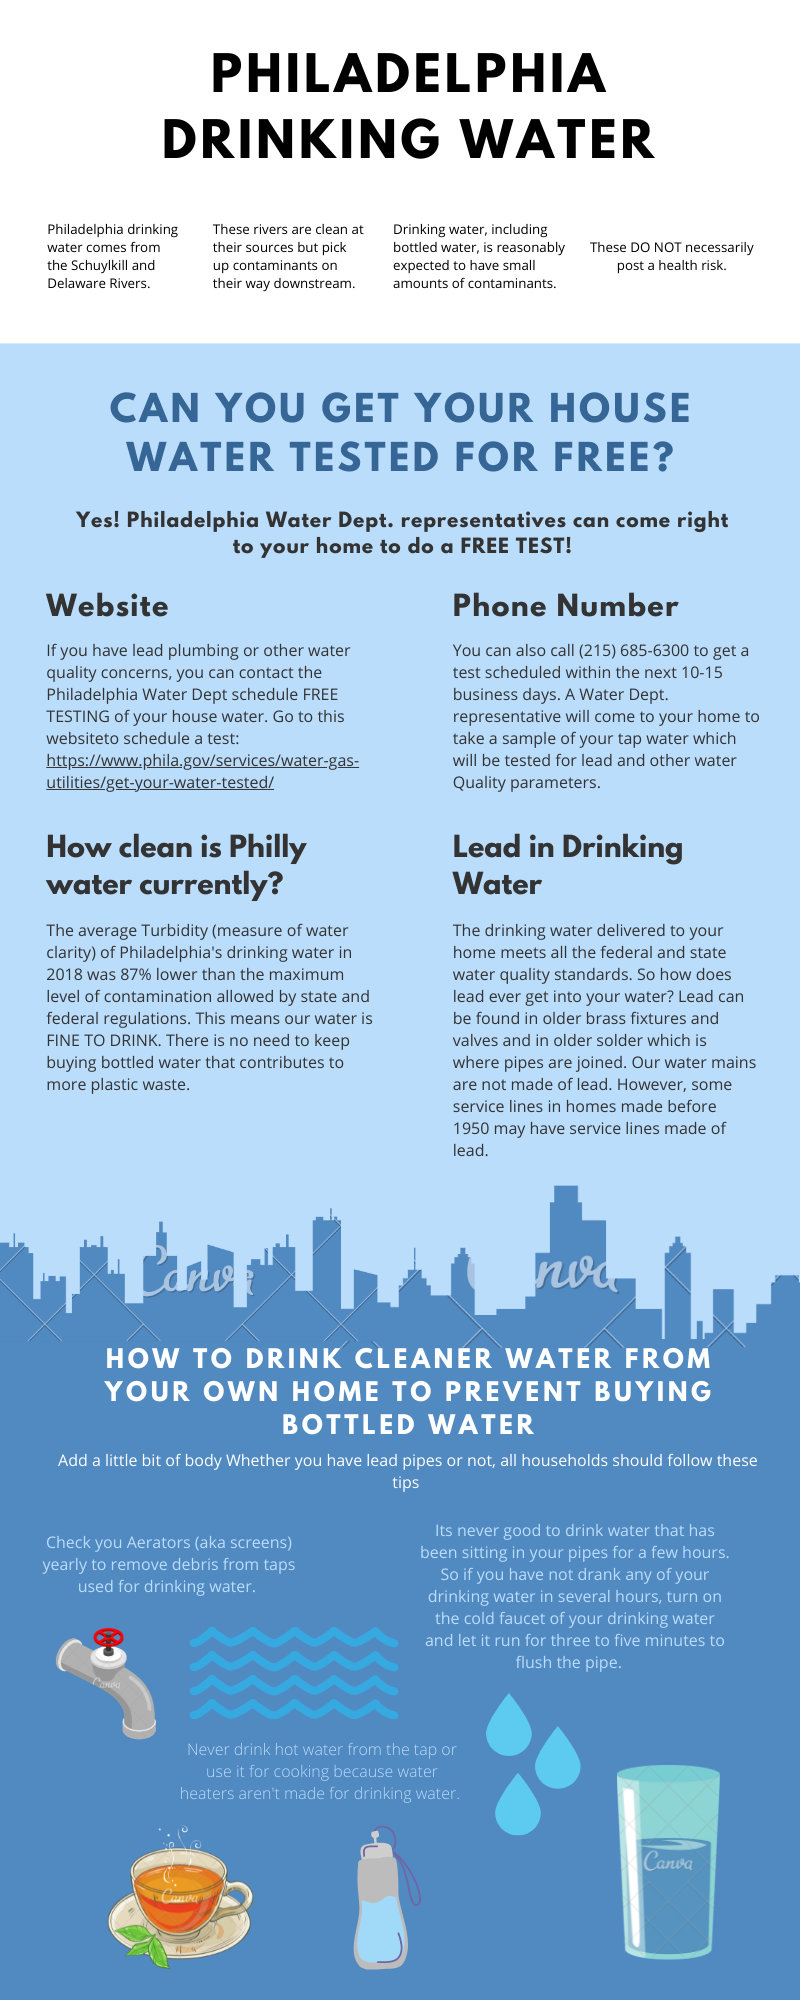 Student Mia Zaia, who worked with the Climate and Sustainability Working Group through Drexel Community Scholars, designed this infographic for the Lindy Center to promote less bottled water use.